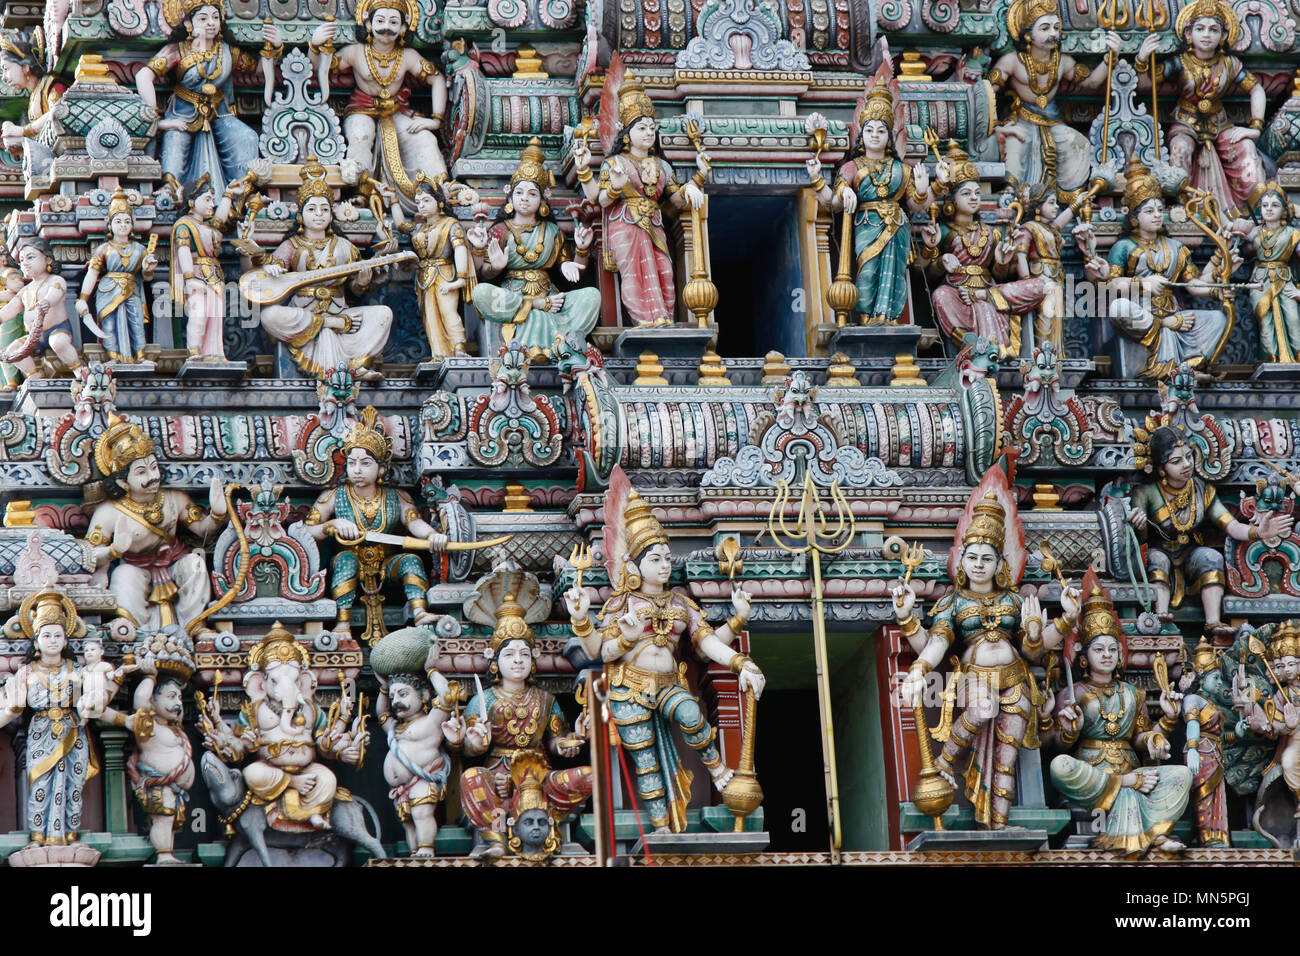 Hindu temple in Singapore - Stock Image